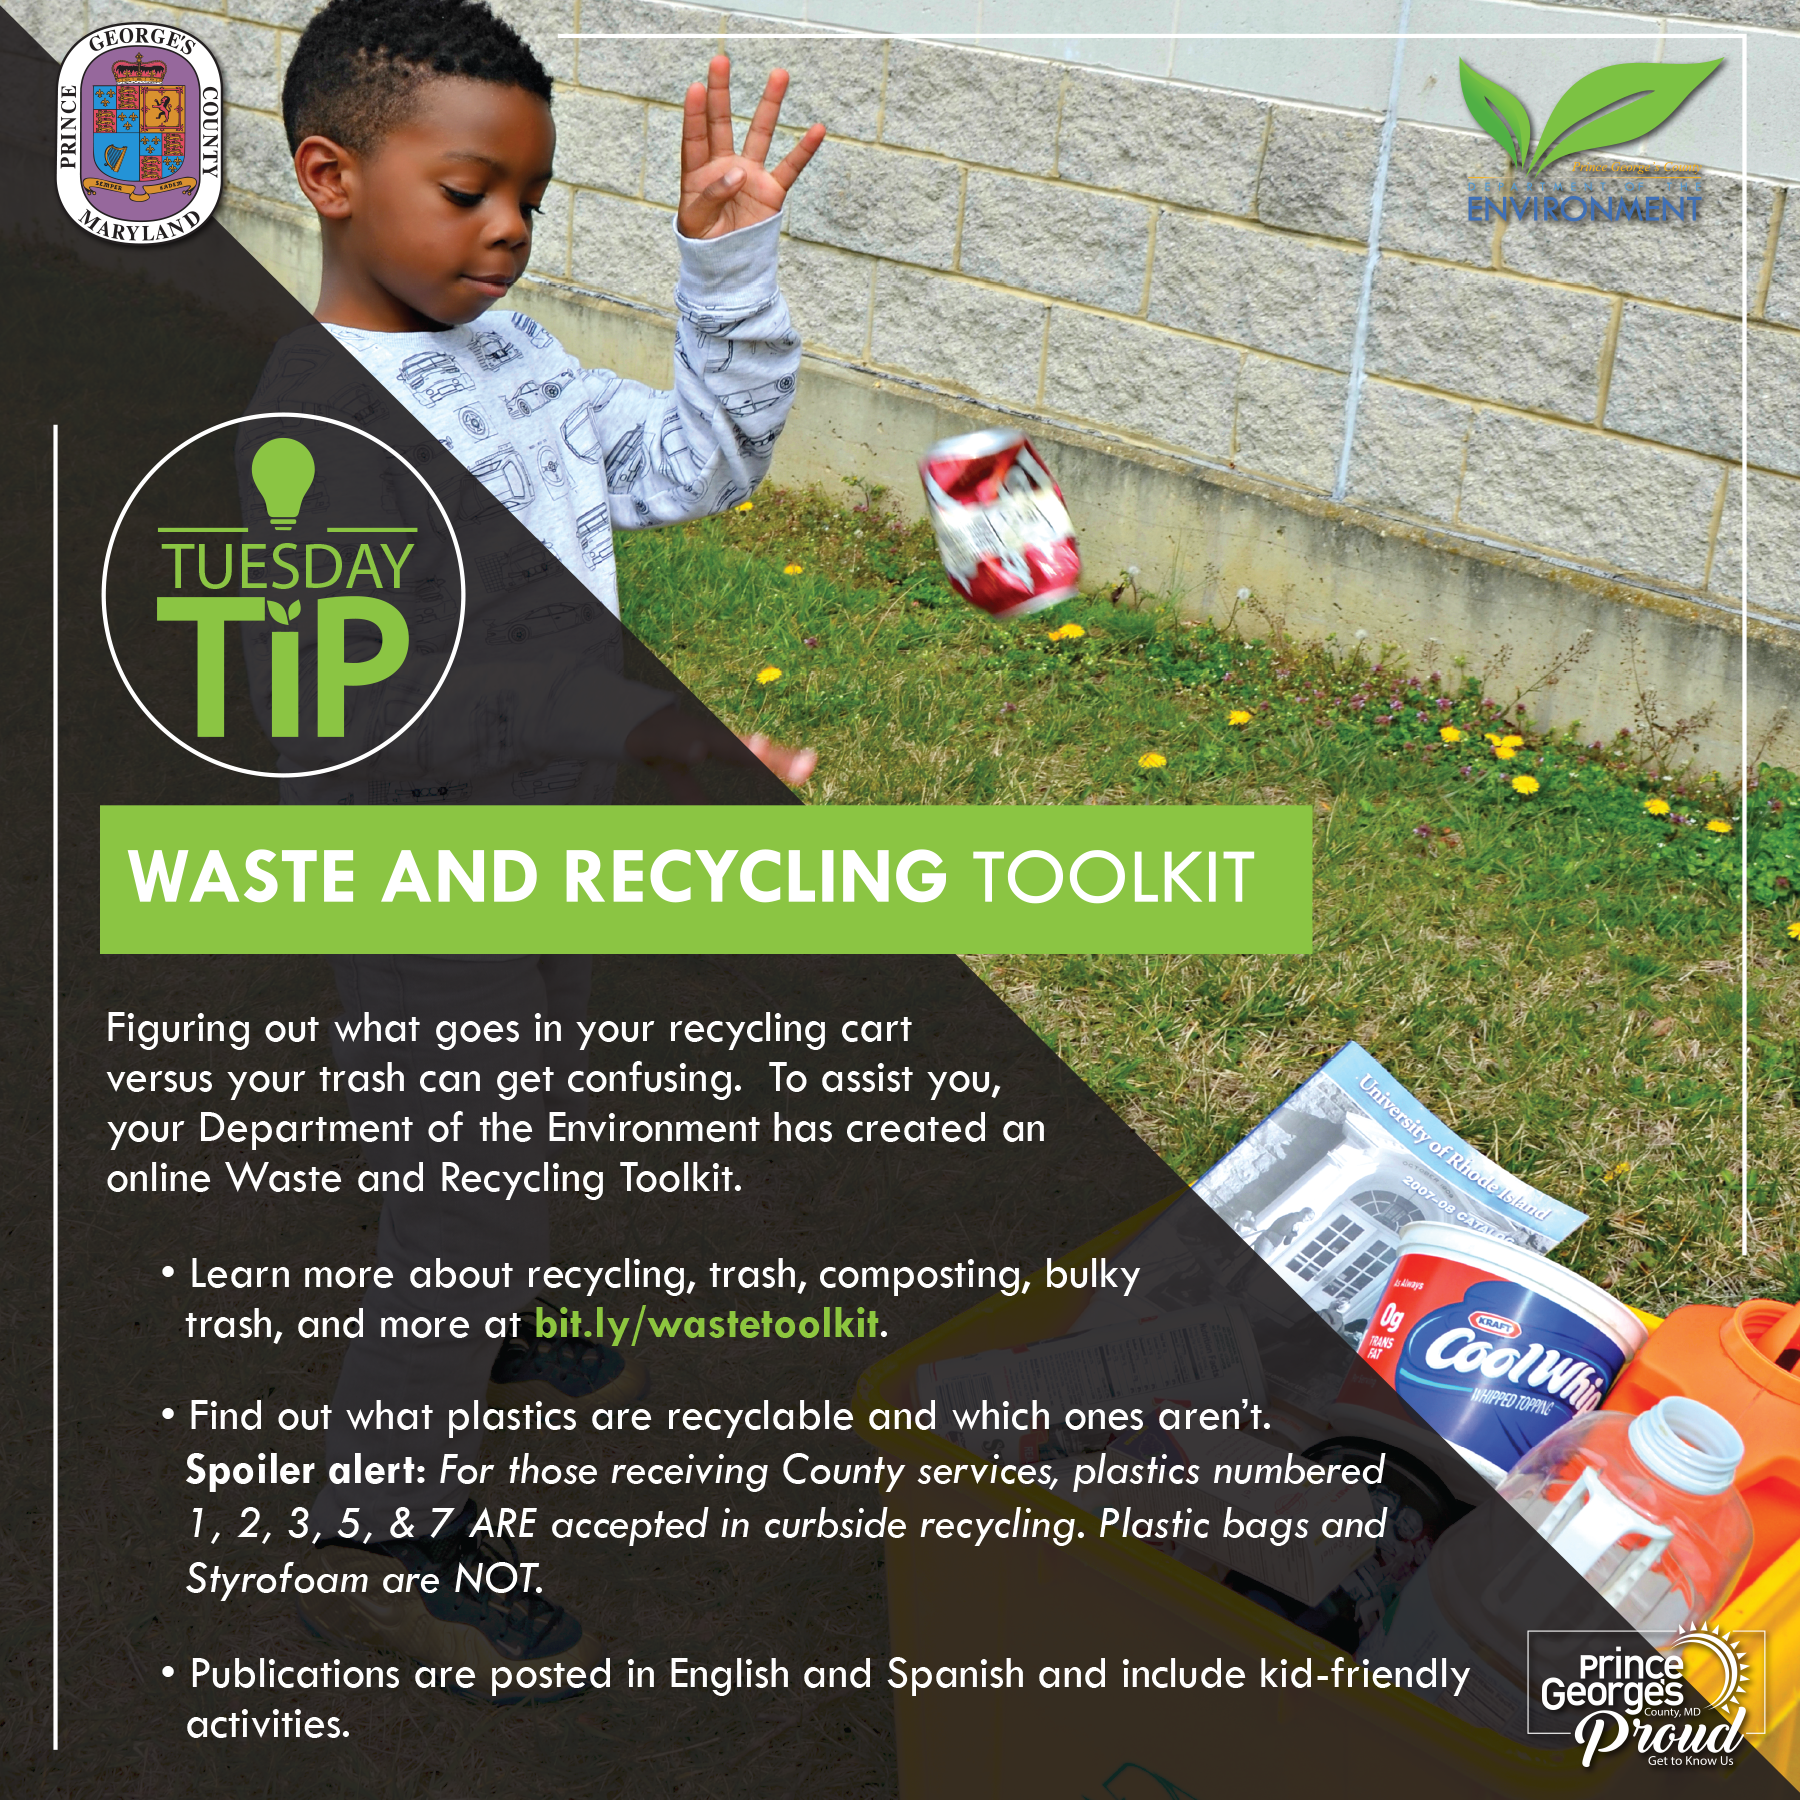 Tues Tip 9.29.20 Waste toolkit eng